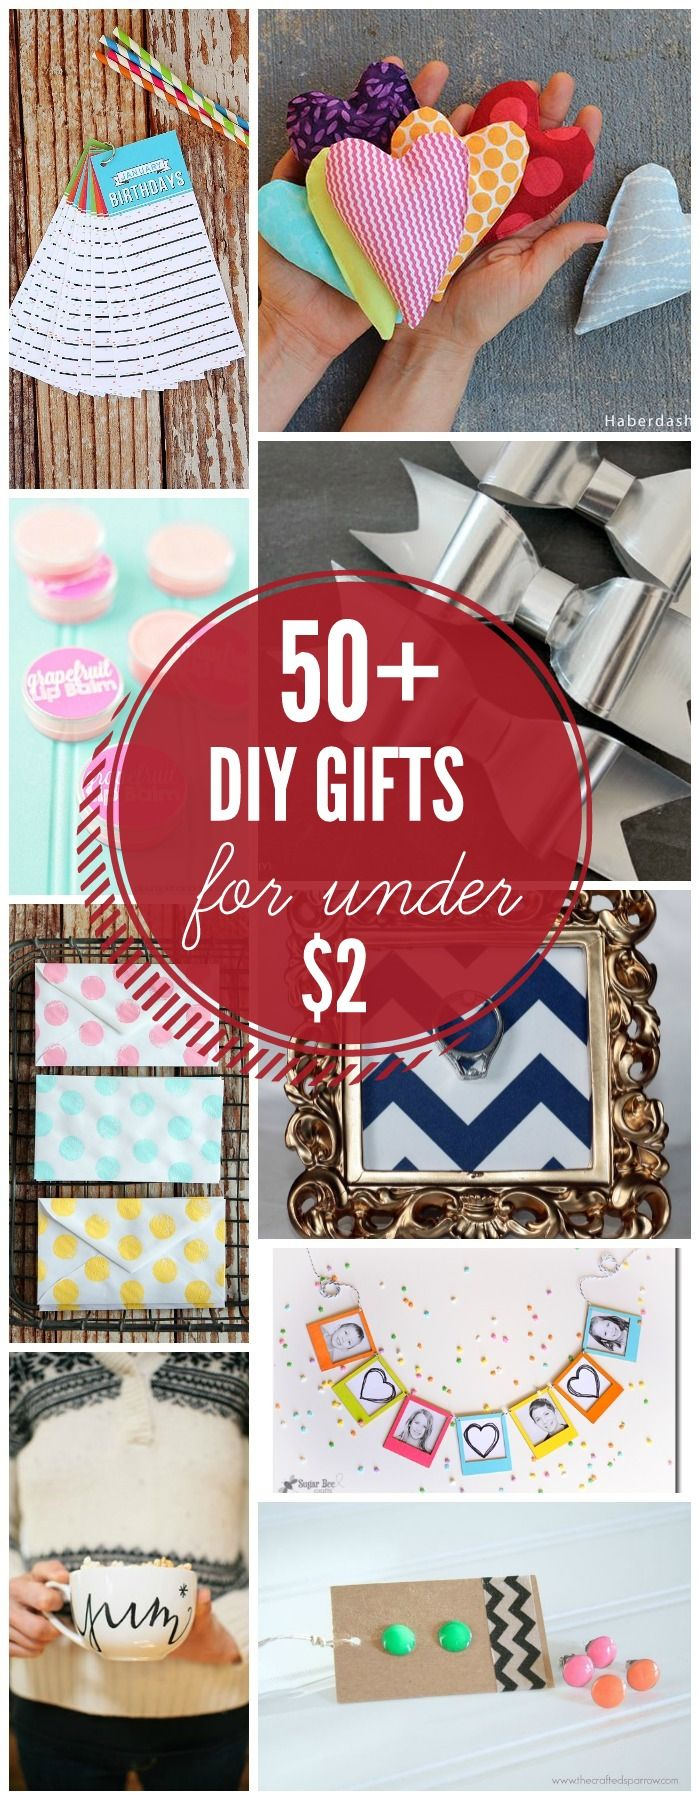 50 Handmade Gift Ideas For Under 2 A Great Collection